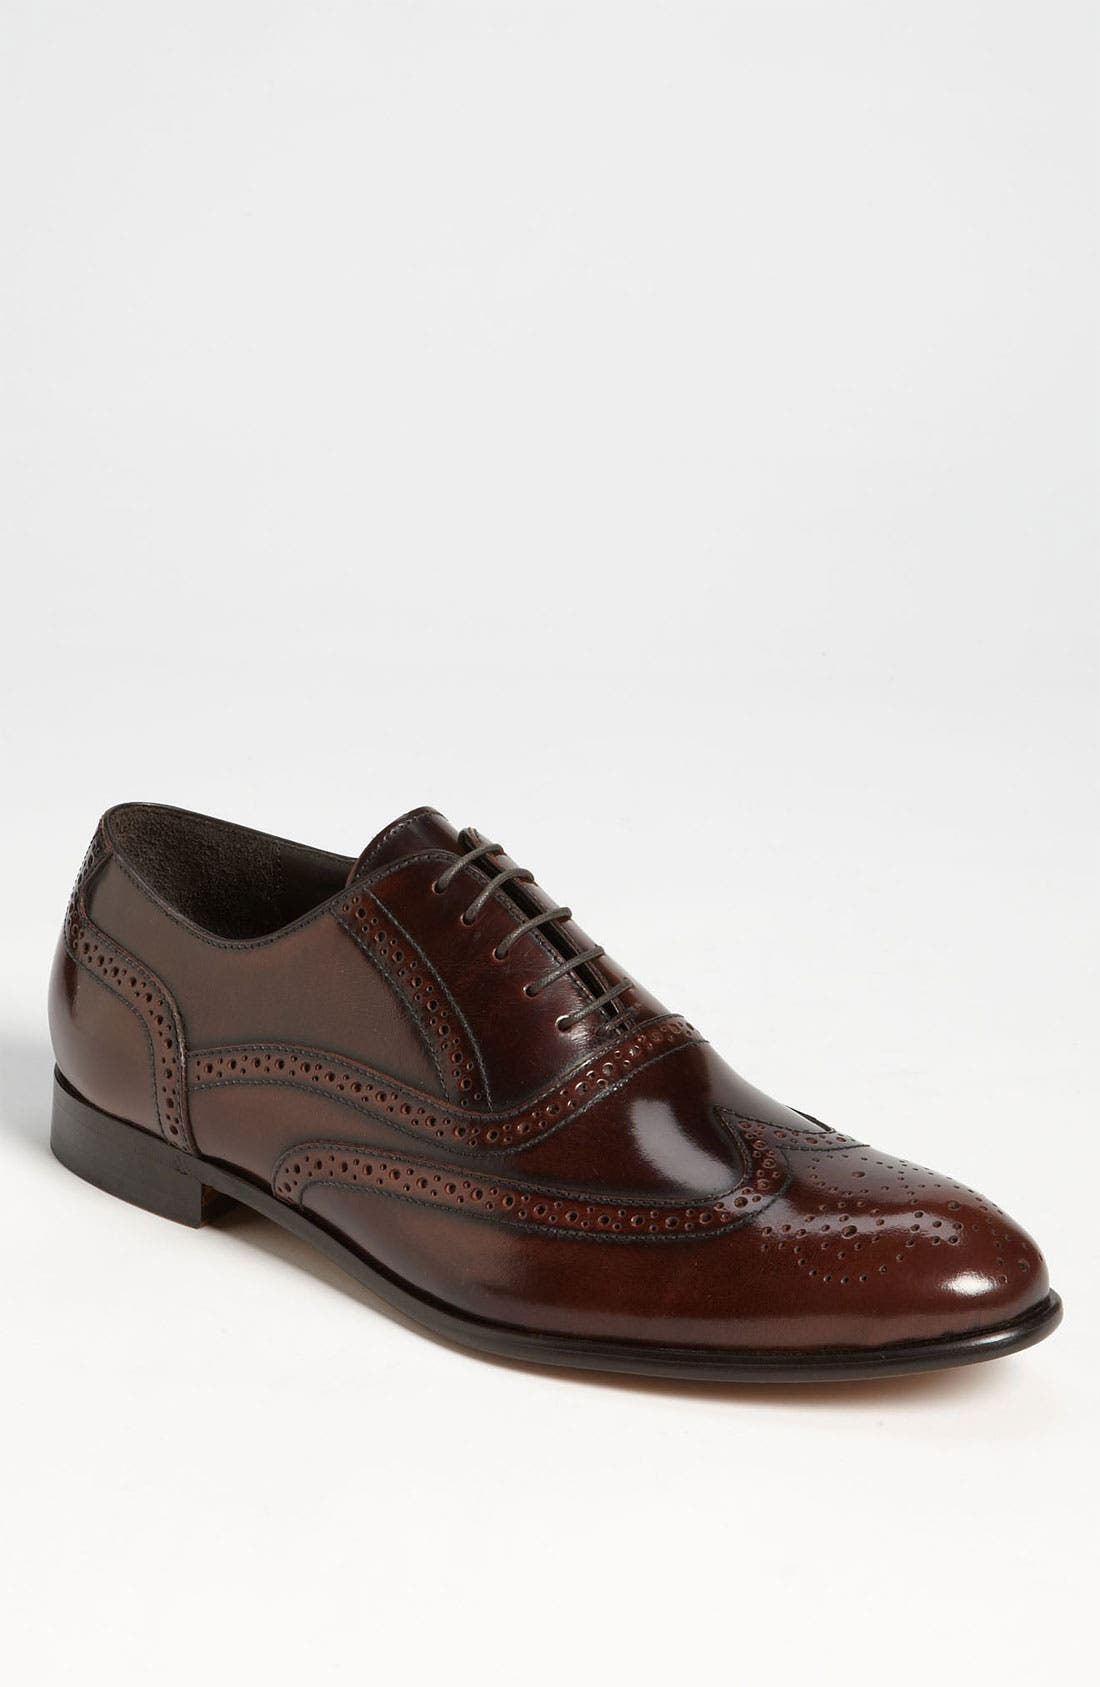 Alternate Image 1 Selected - Gordon Rush 'Pacific' Wingtip (Online Only)